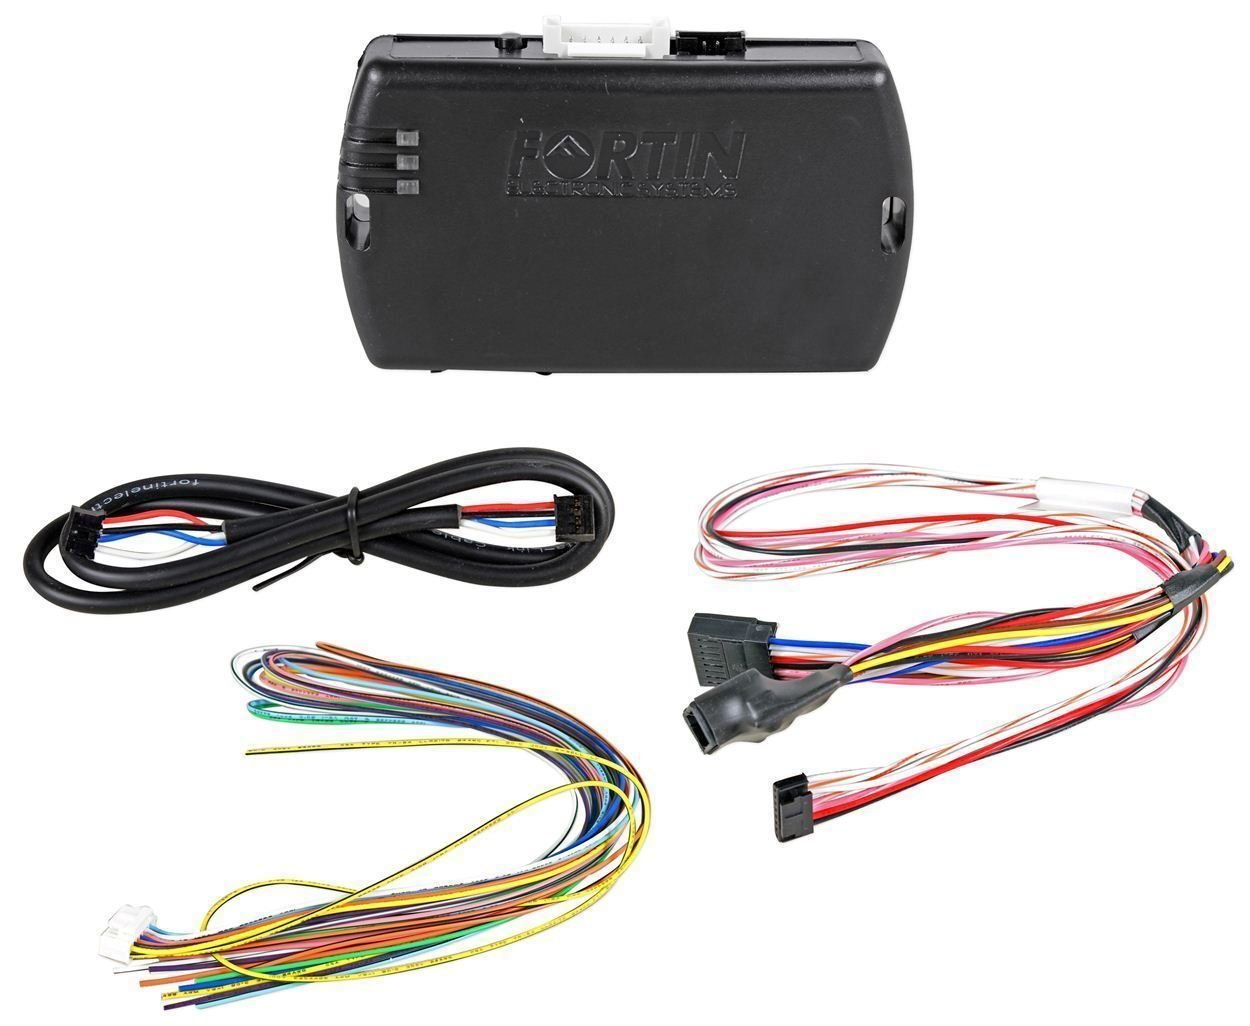 Fortin Bypass Module with T-harness for Chysler/Dodge/Jeep Tip Starts